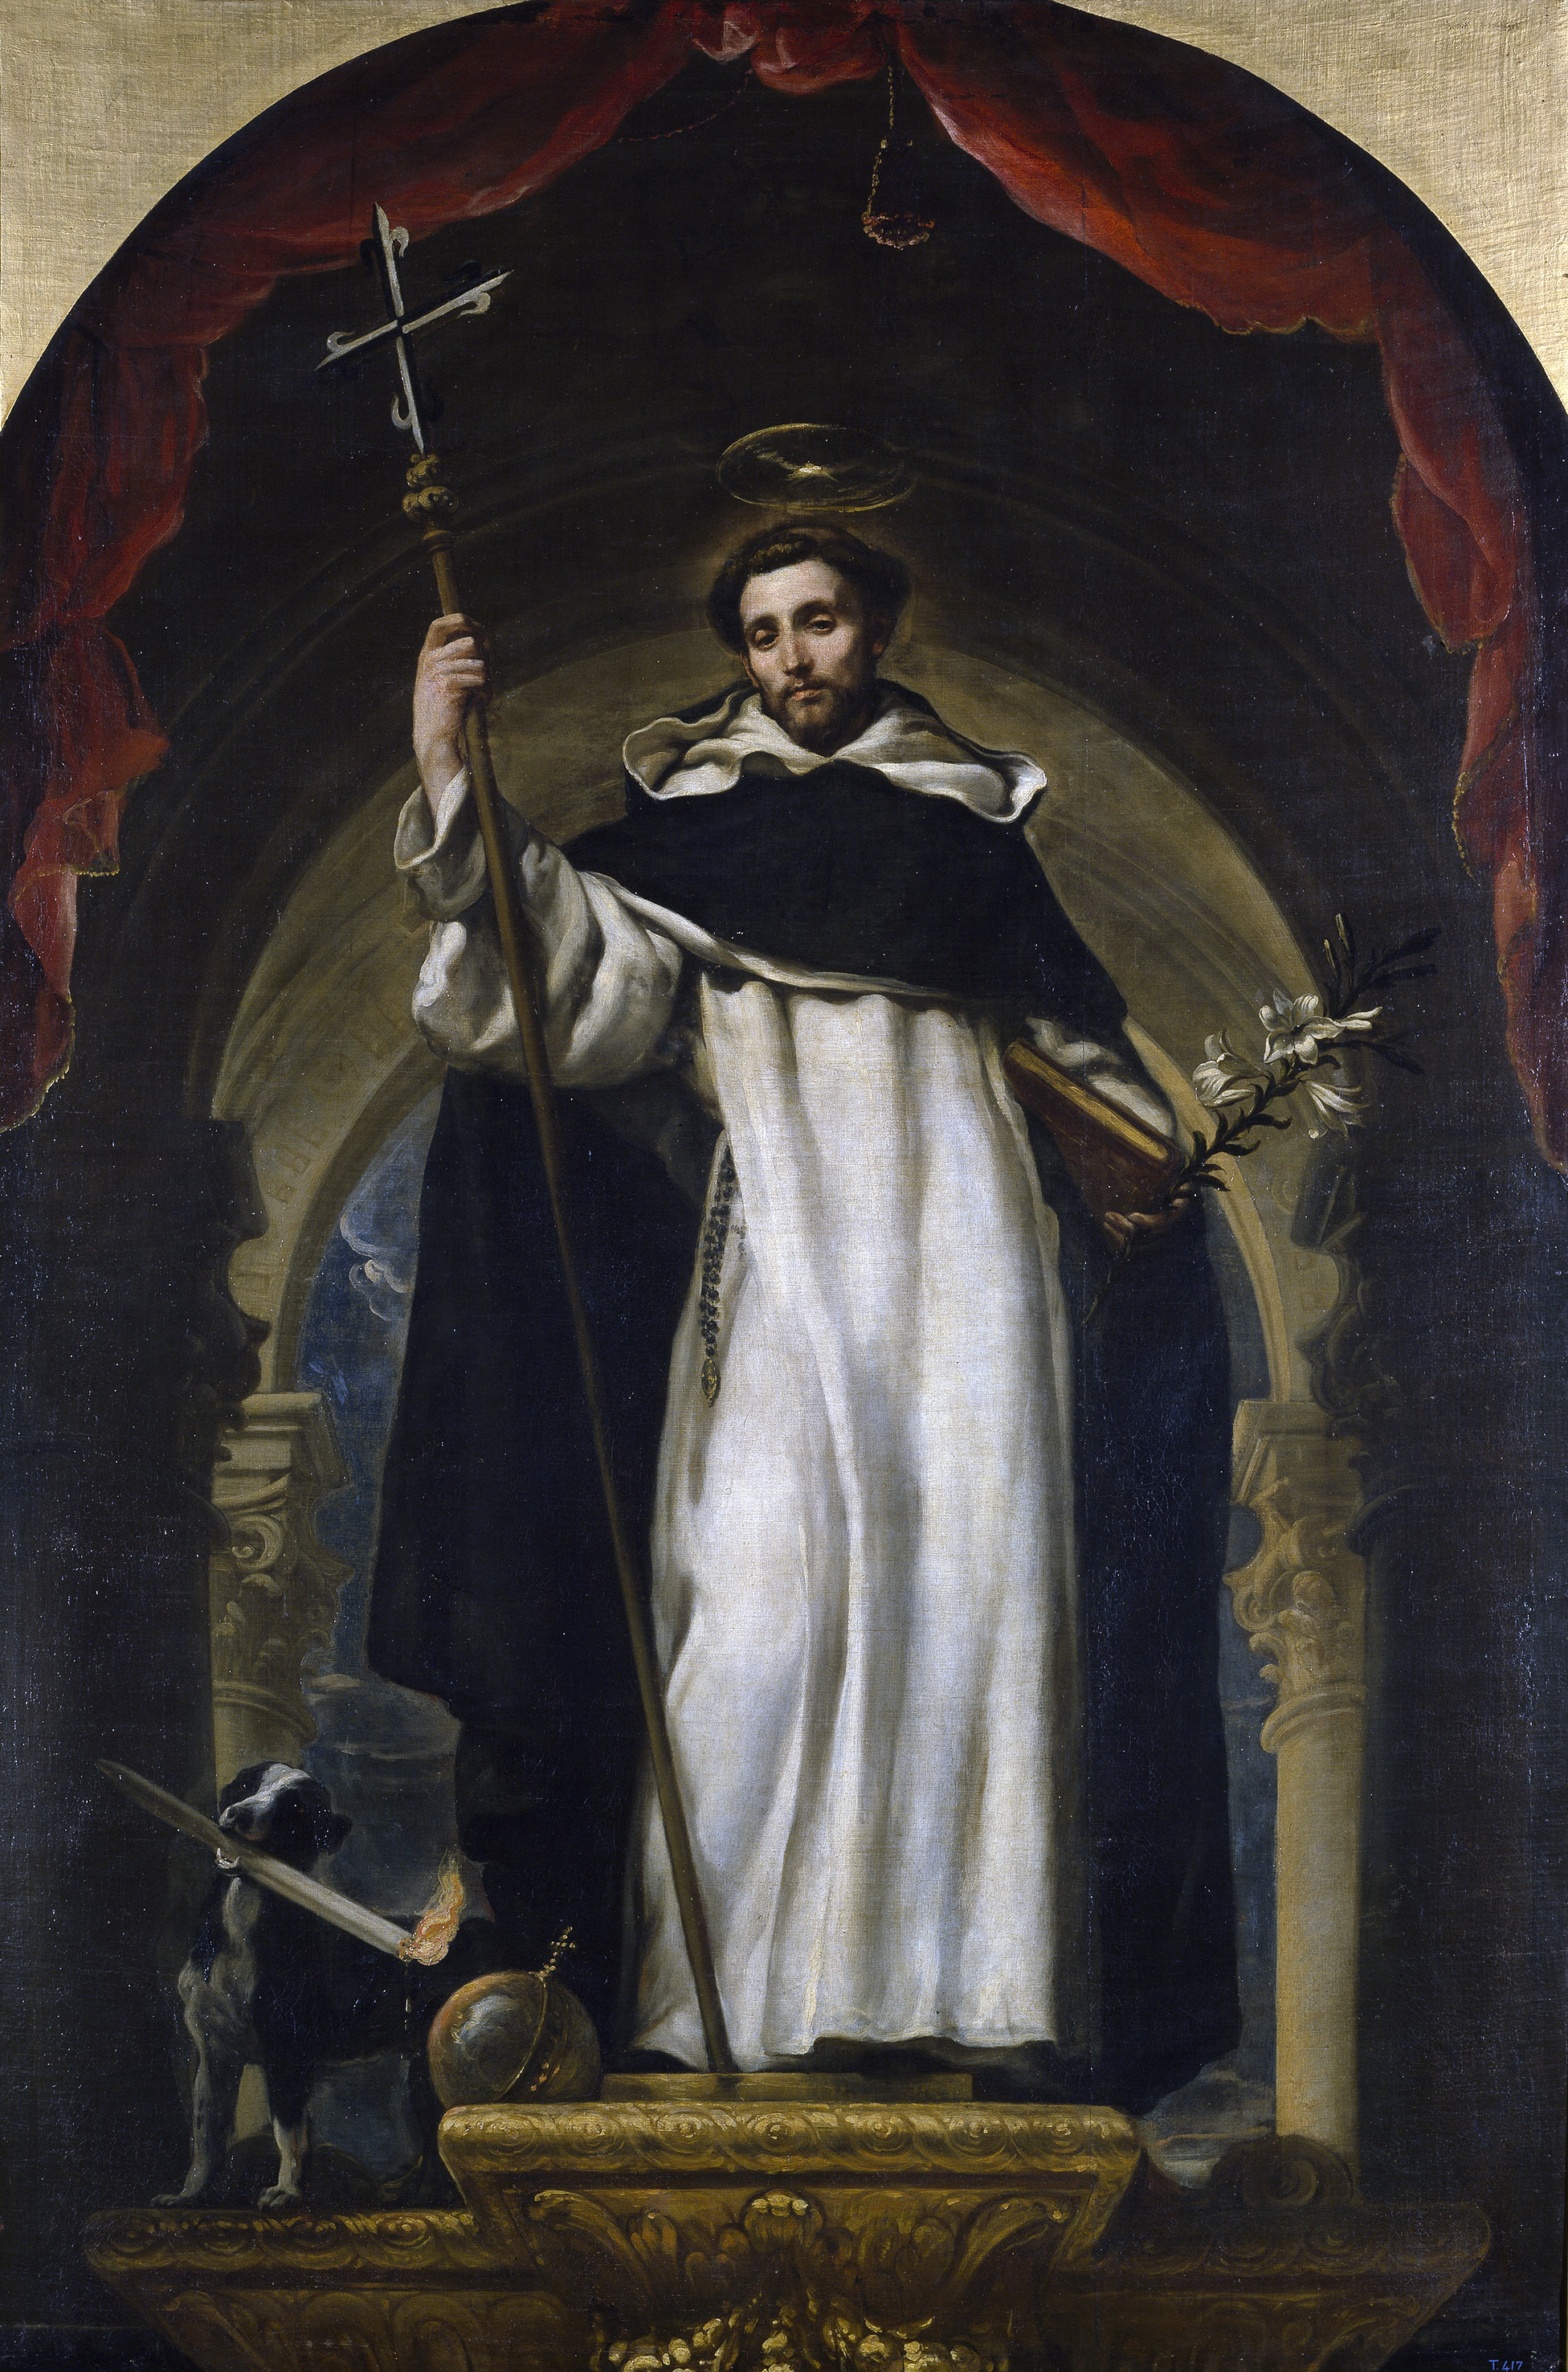 St Dominic, Patron of Astronomers, born 1170.